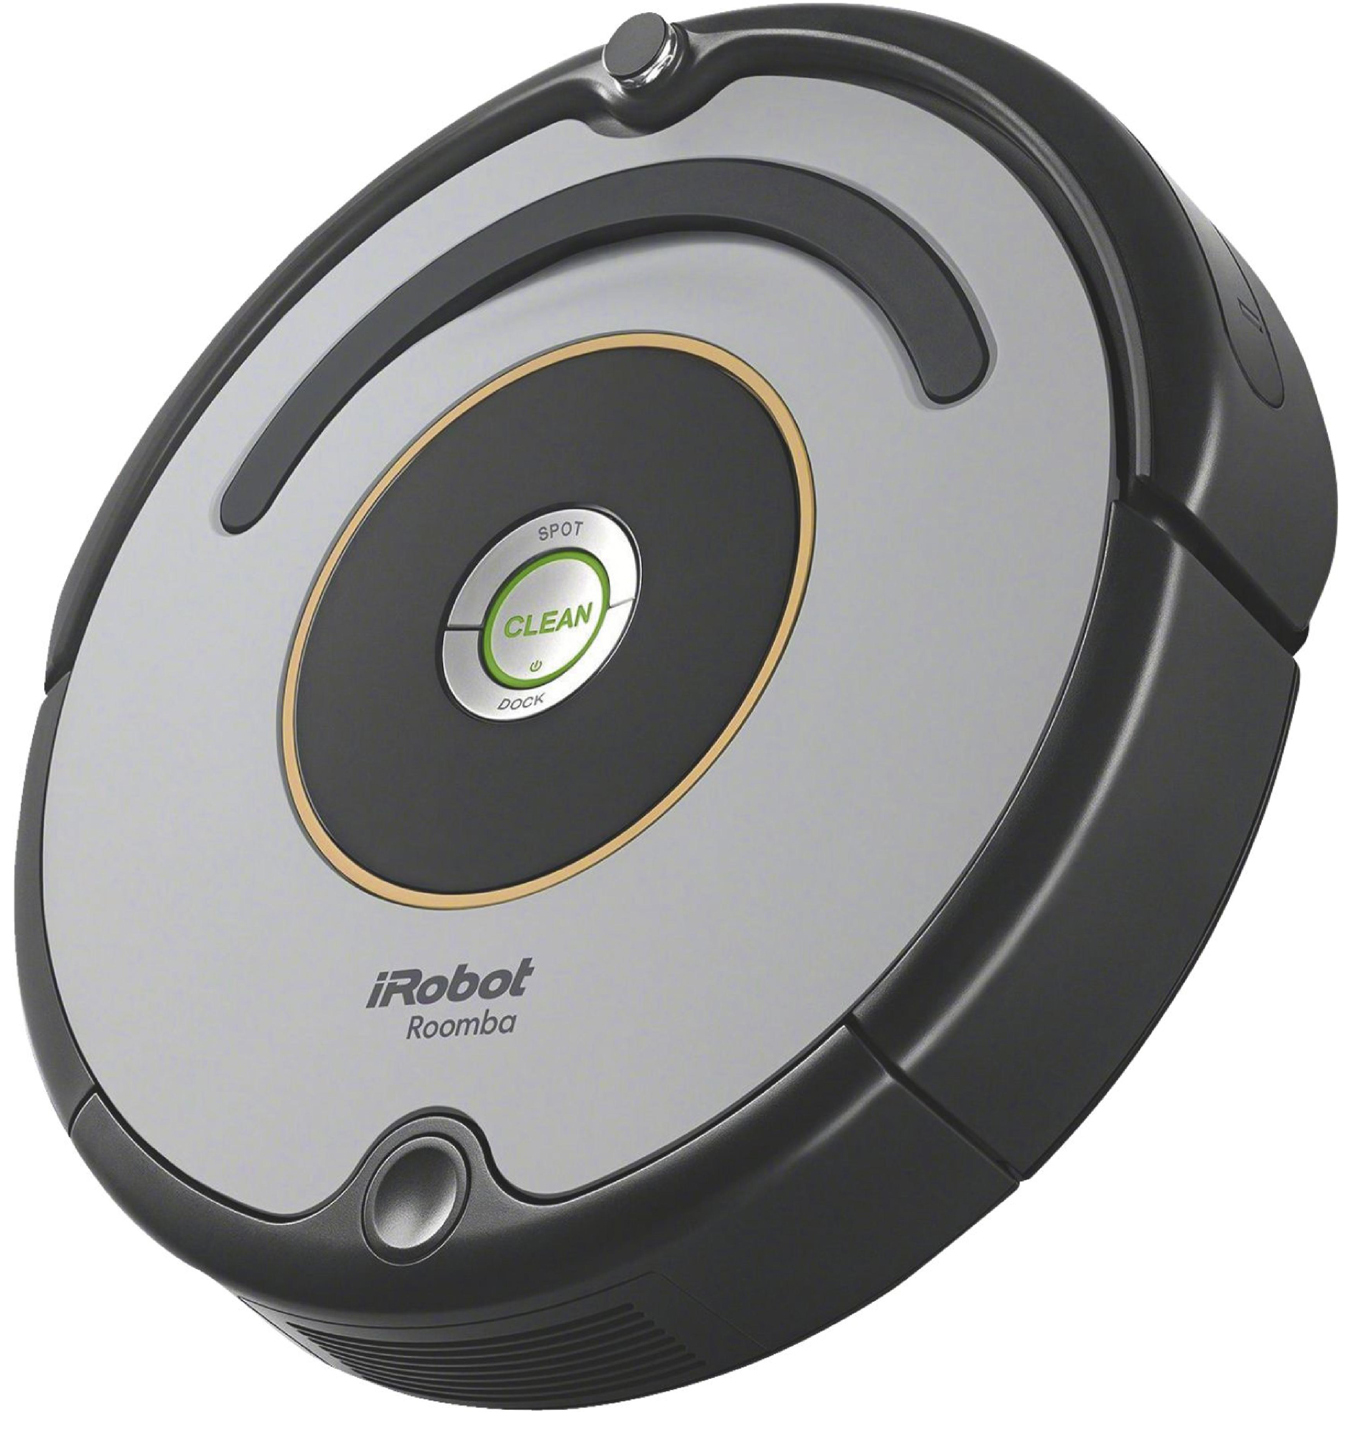 irobot roomba 616 beutelloser roboter staubsauger neu ovp 5060359283269 ebay. Black Bedroom Furniture Sets. Home Design Ideas